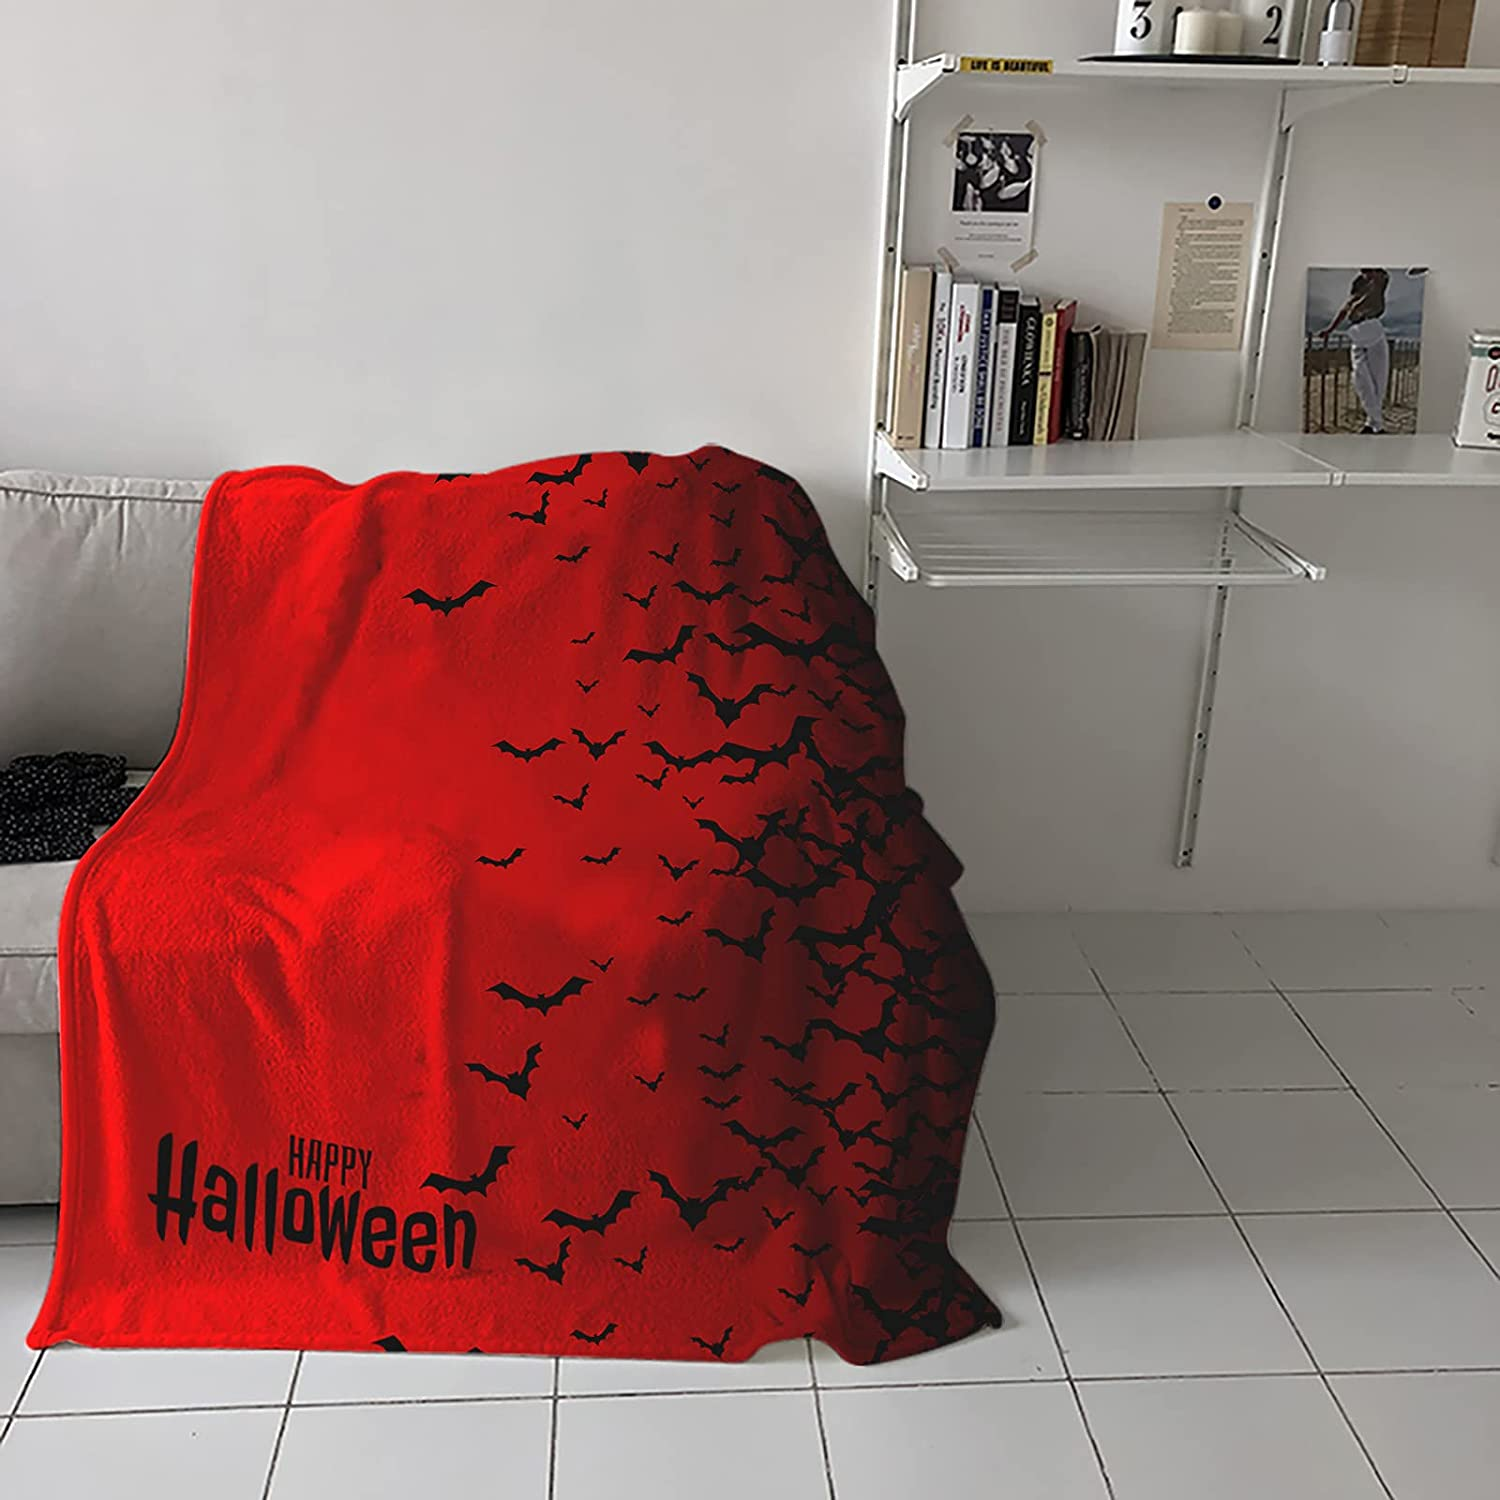 Flannel Fleece Throw Blanket for Couch or Hallowe Happy Max 40% OFF Bed Sofa Sacramento Mall